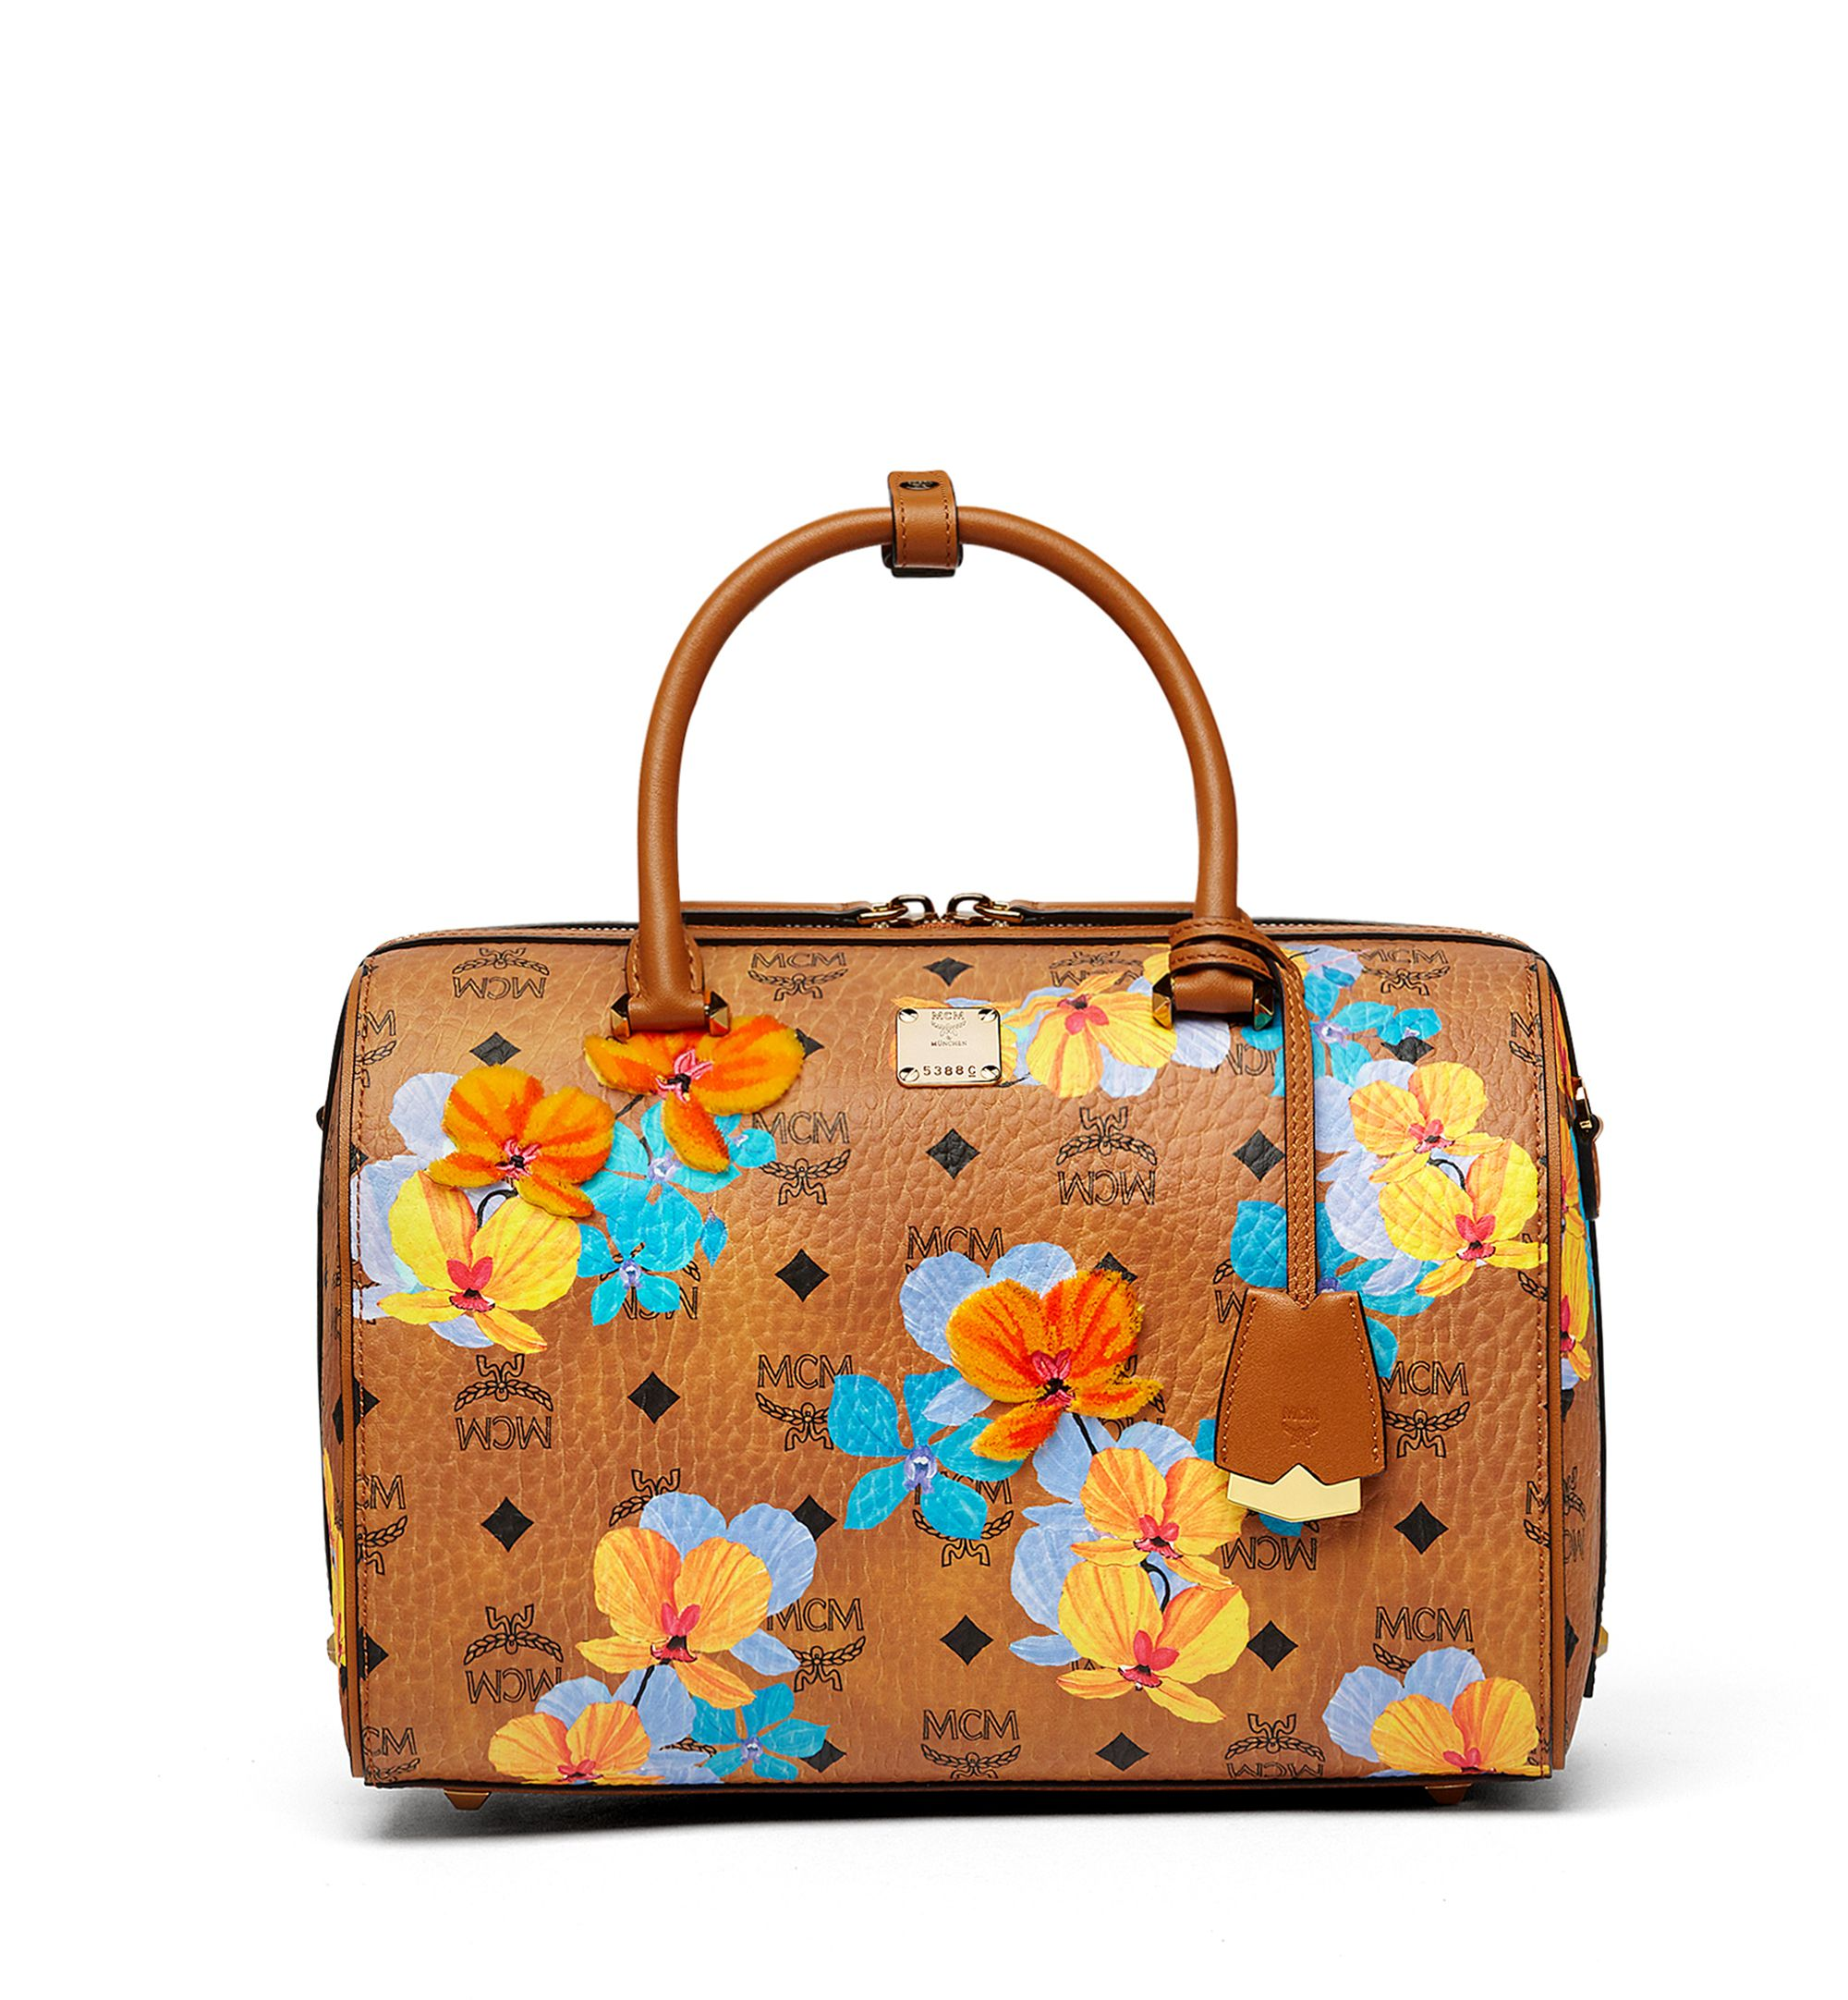 d4a6f96af MCM ESSENTIAL BOSTON BAG IN FLORAL PRINT VISETOS. #mcm #bags #leather  #travel bags #weekend #canvas #